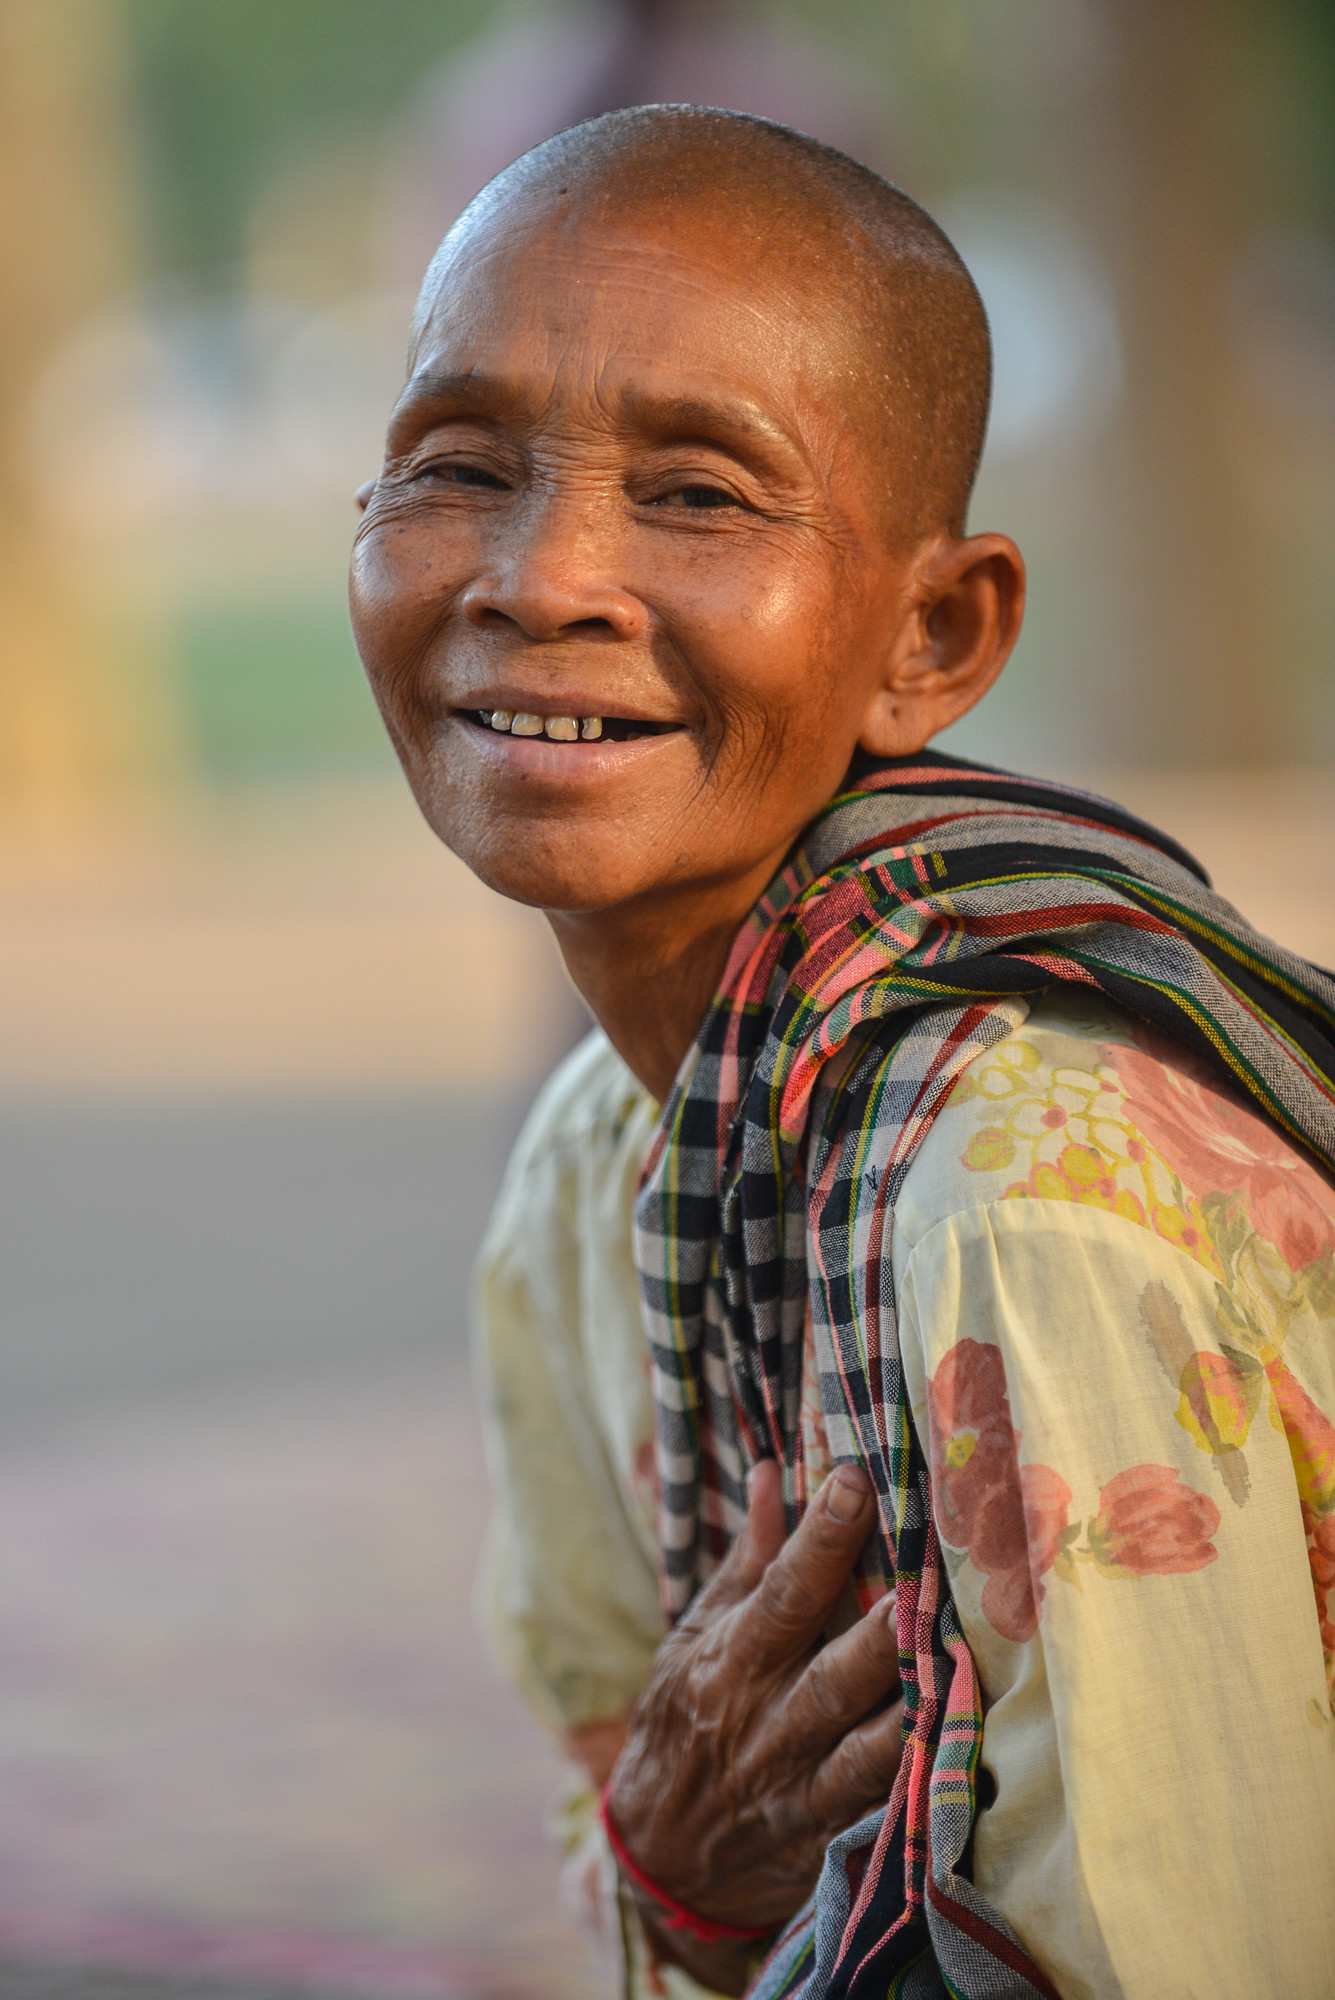 Cambodia photo tours Angkor Wat locals 1